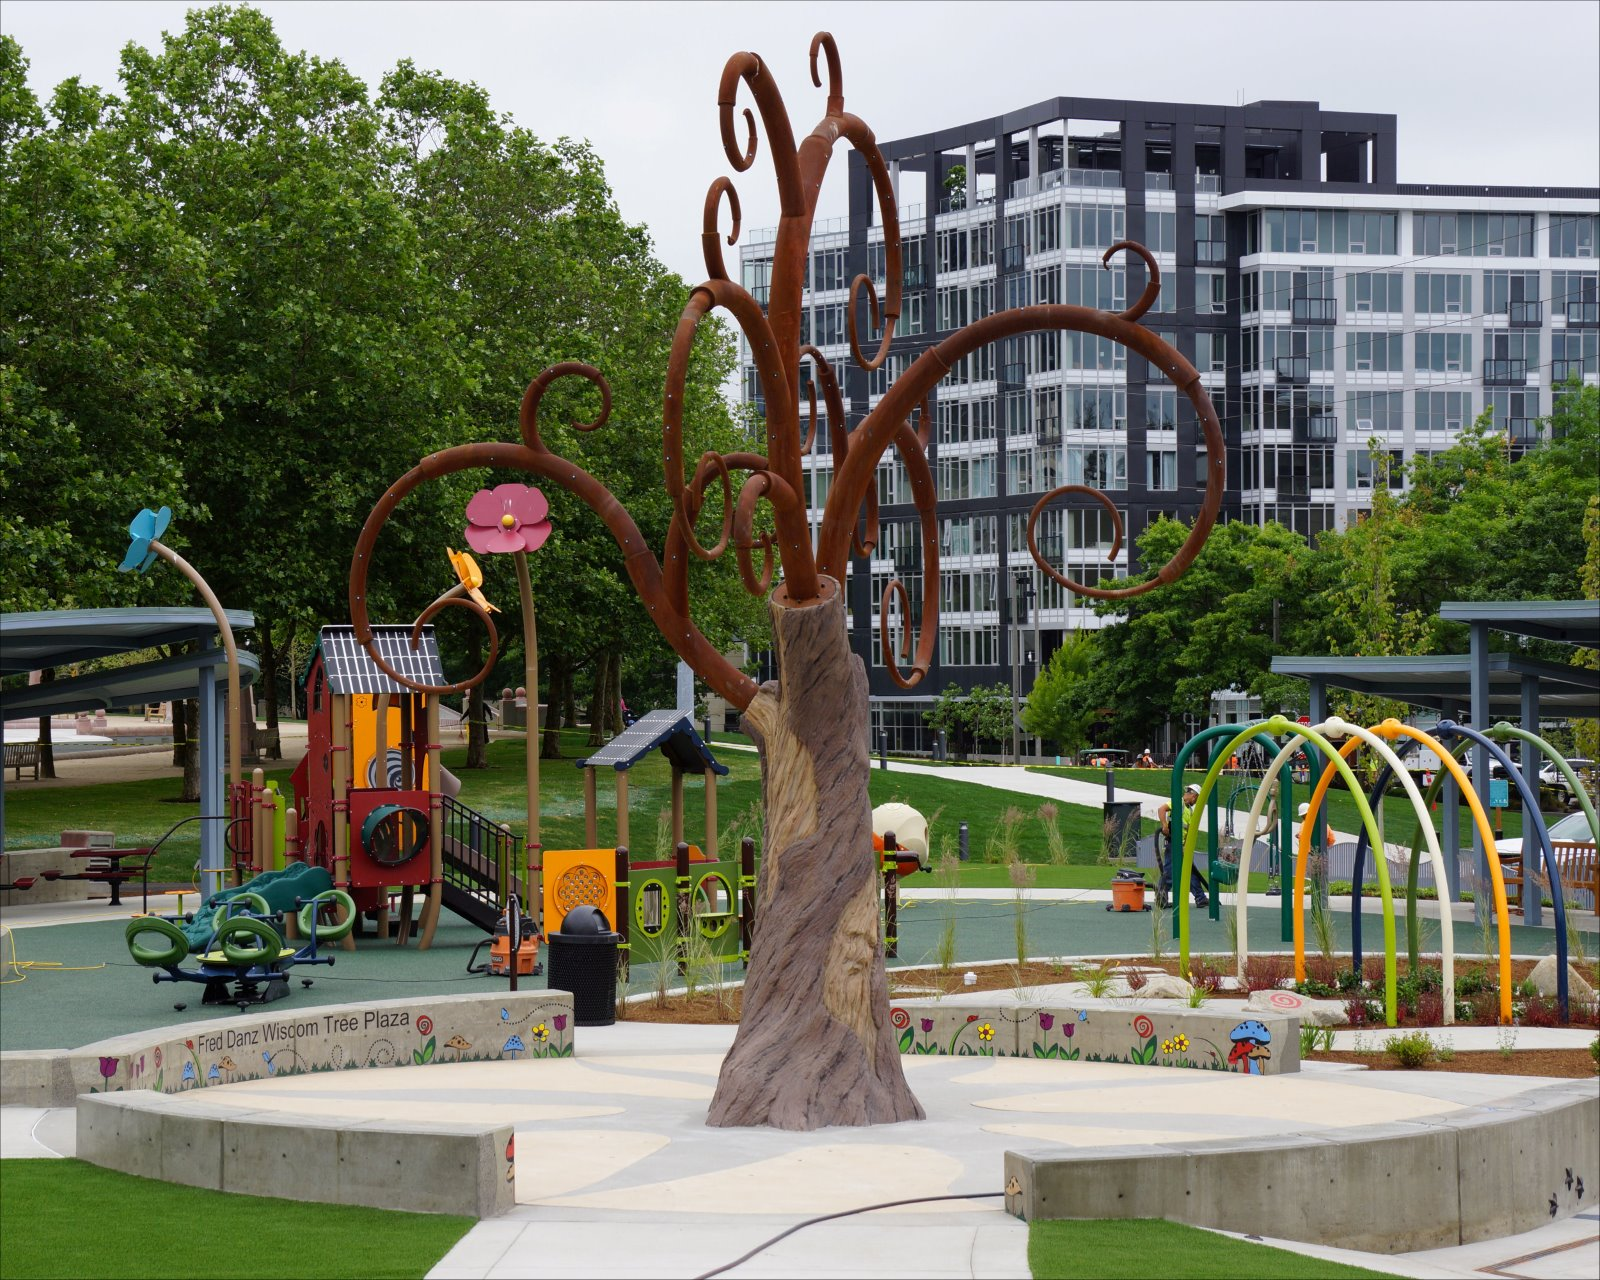 Downtown Park's Inspiration Playground